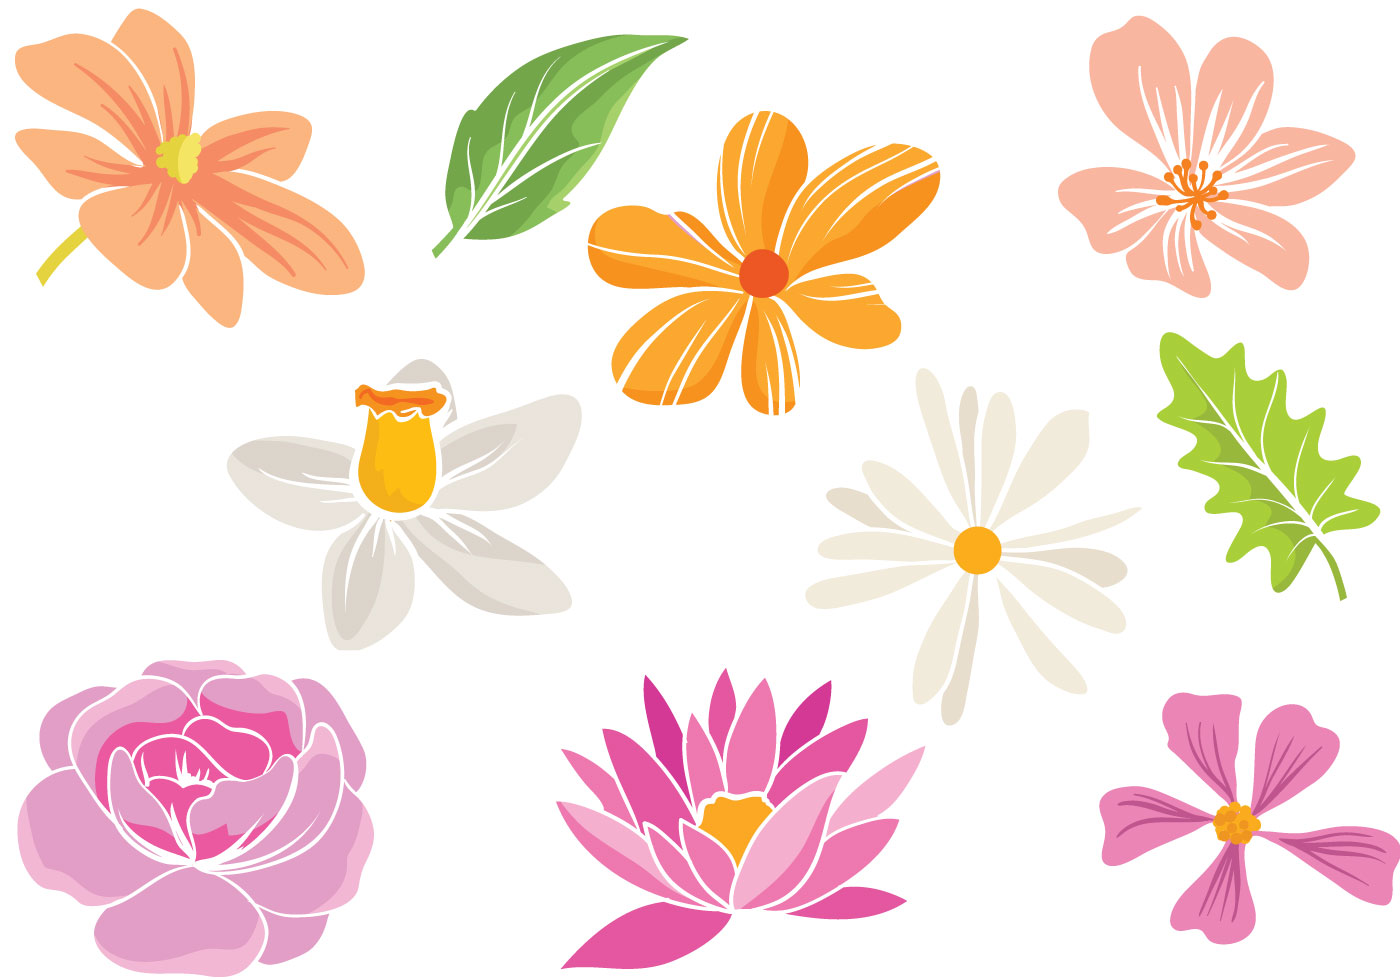 Simple Flower Free Vector Art 12275 Free Downloads